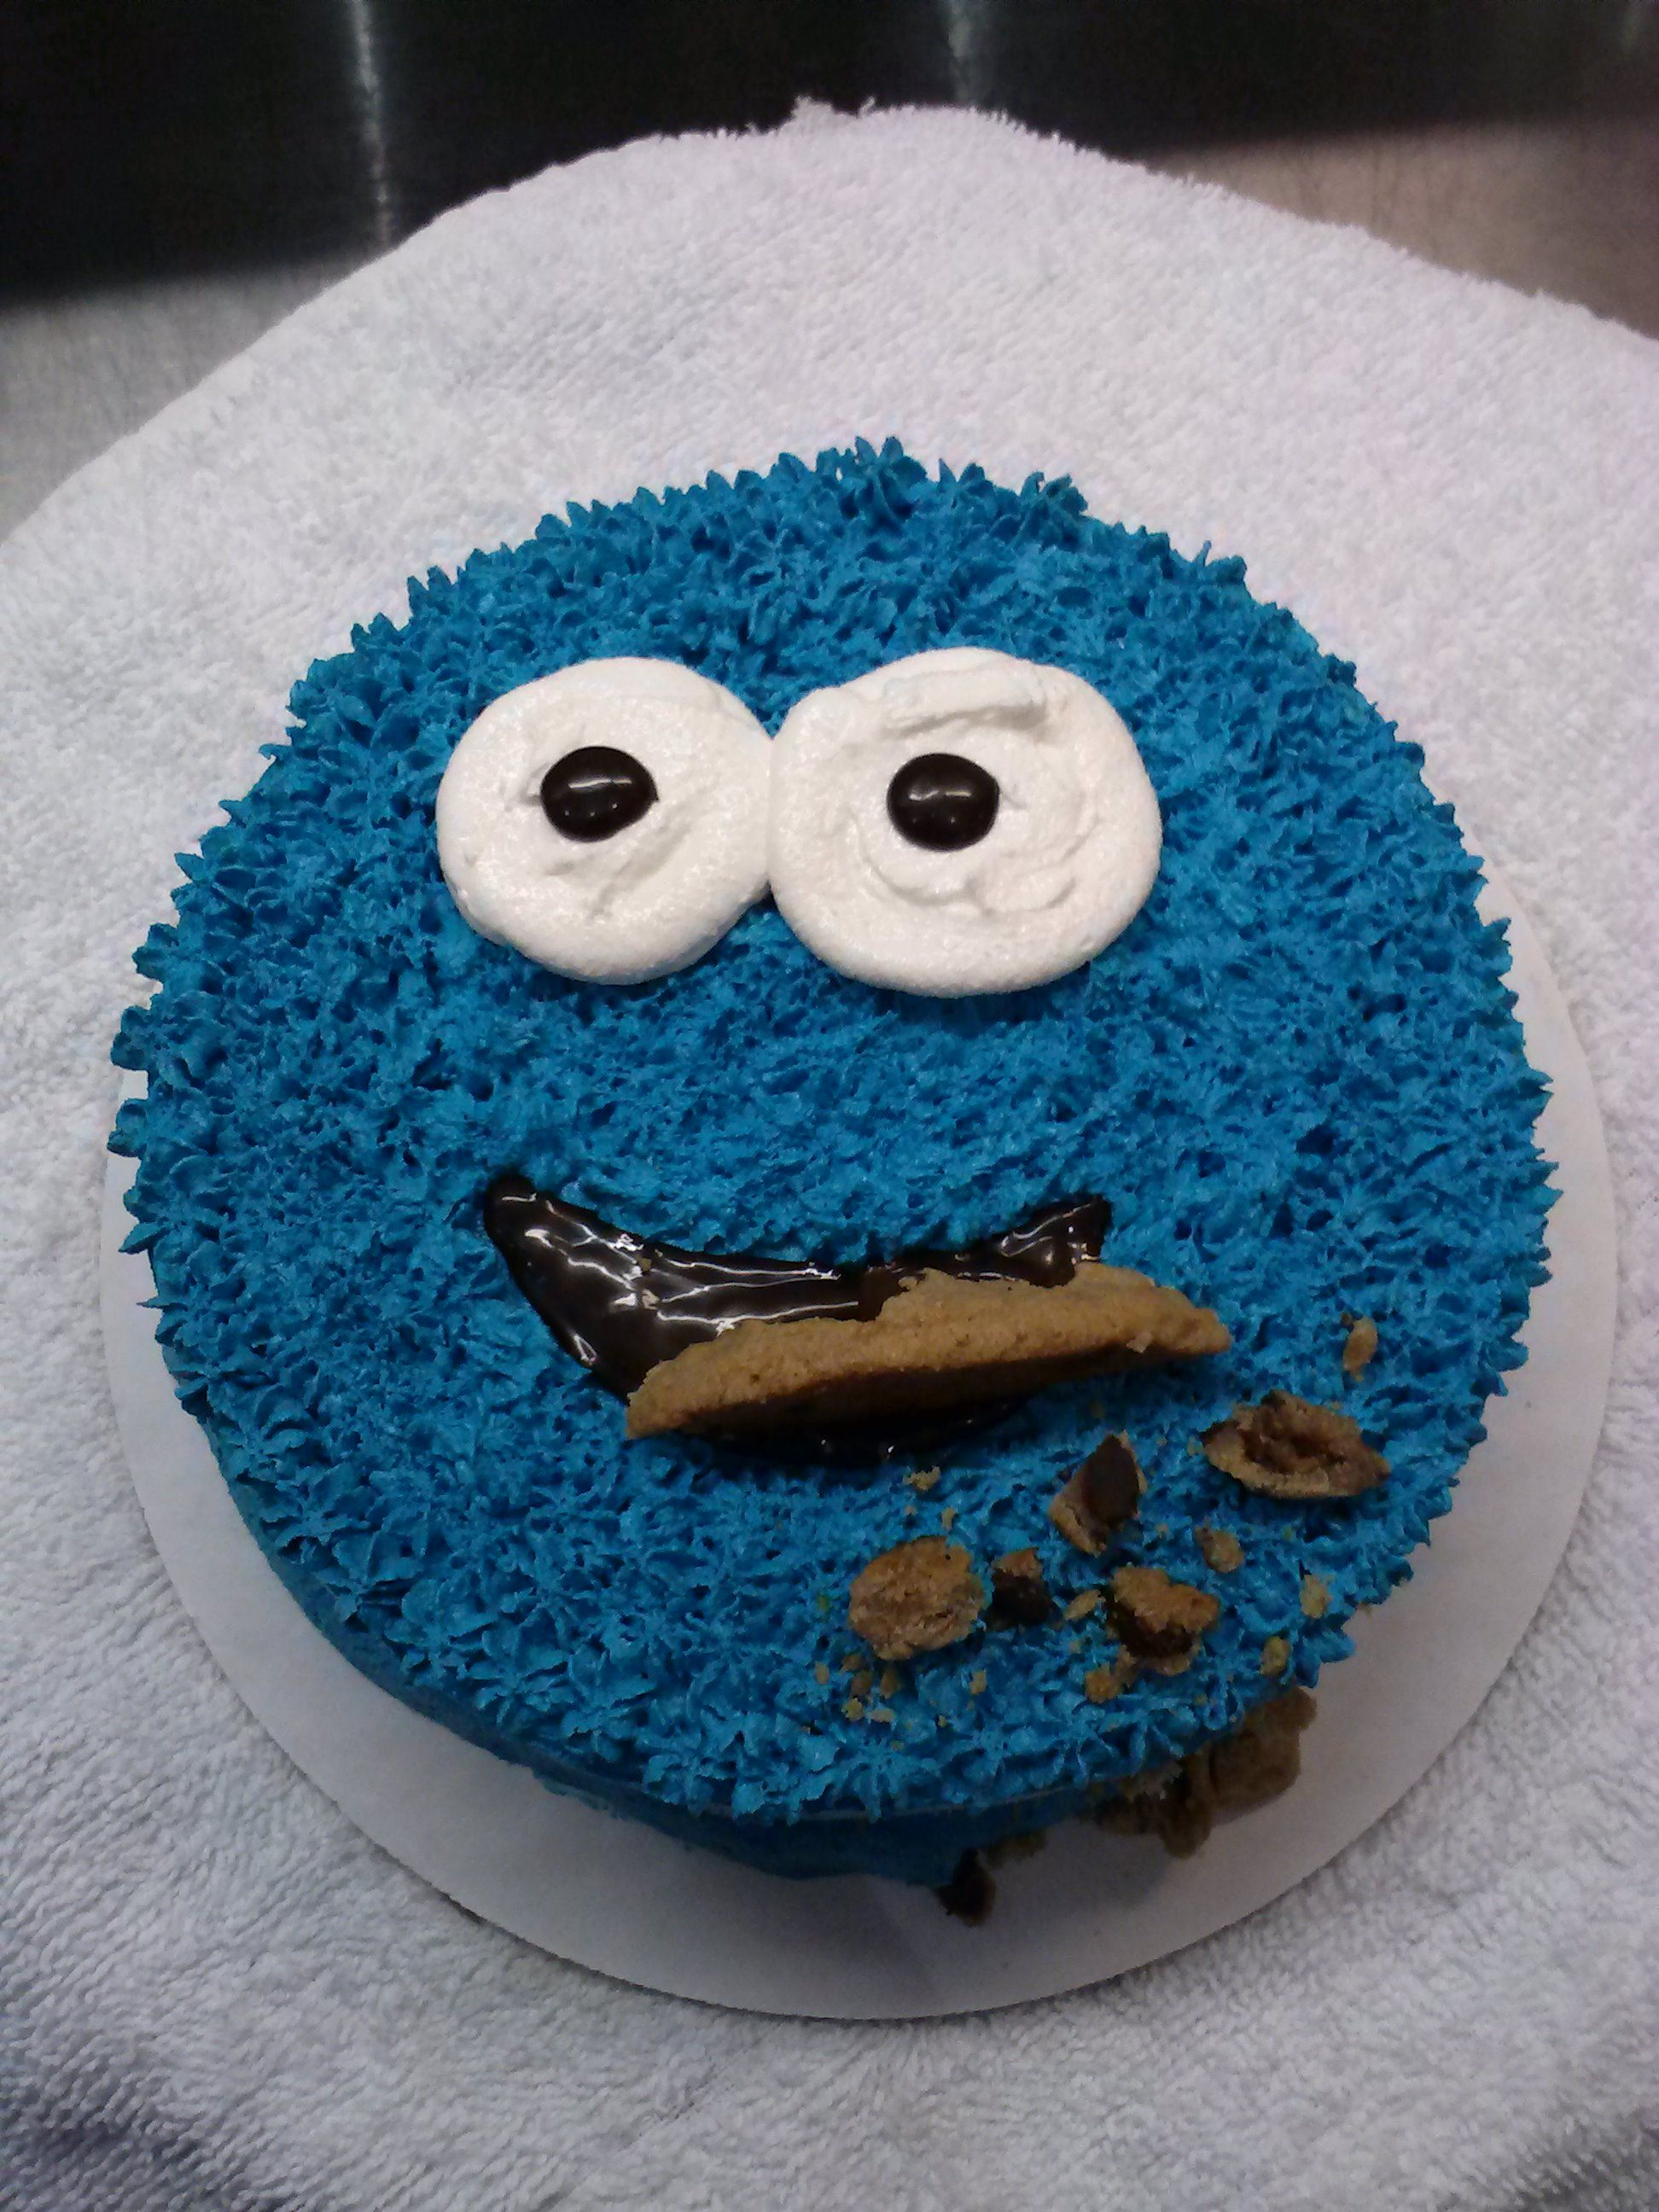 Cookie monster ice cream cake i made for a customer ben